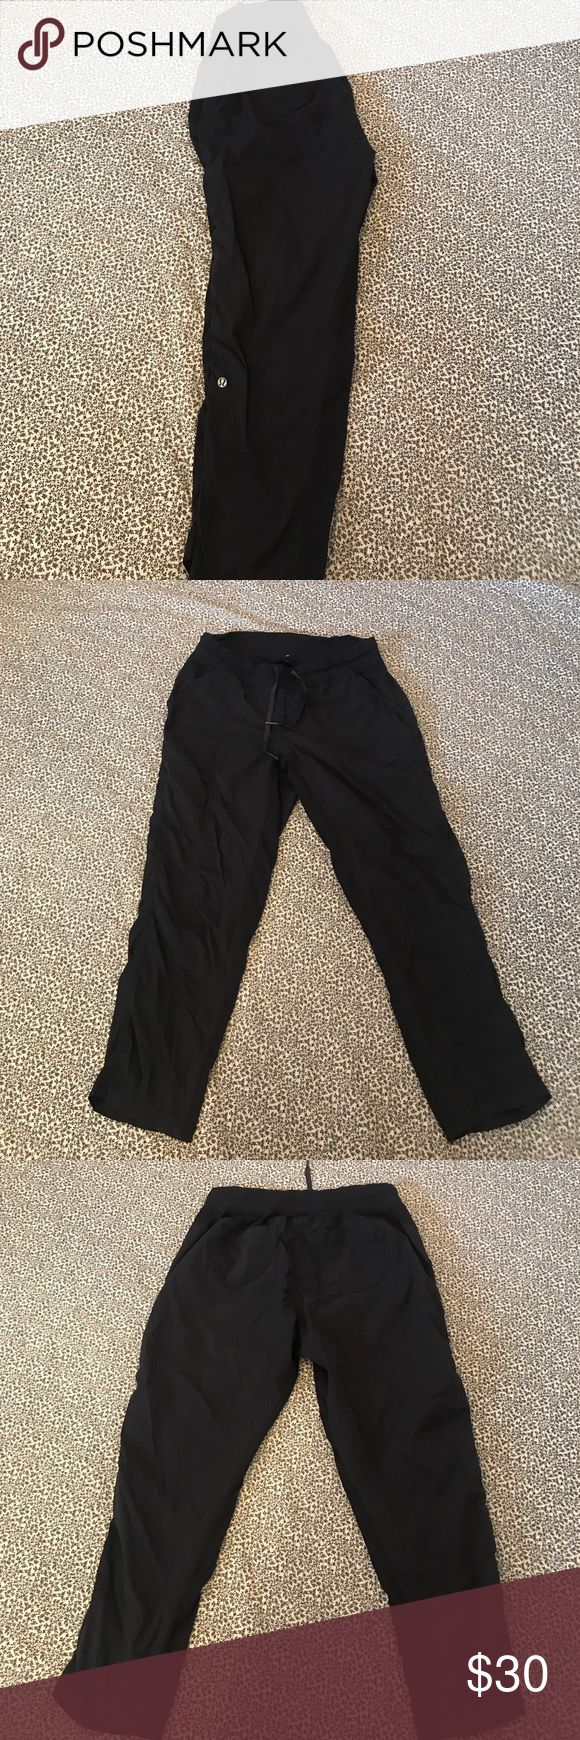 Lululemon unlined pants Size 12 size dot confirmed navy Lululemon unlined pants.  These remind me of studio pants but the logo is on the calf.  Drawstring for a comfortable fit and multiple pockets. lululemon athletica Pants Track Pants & Joggers